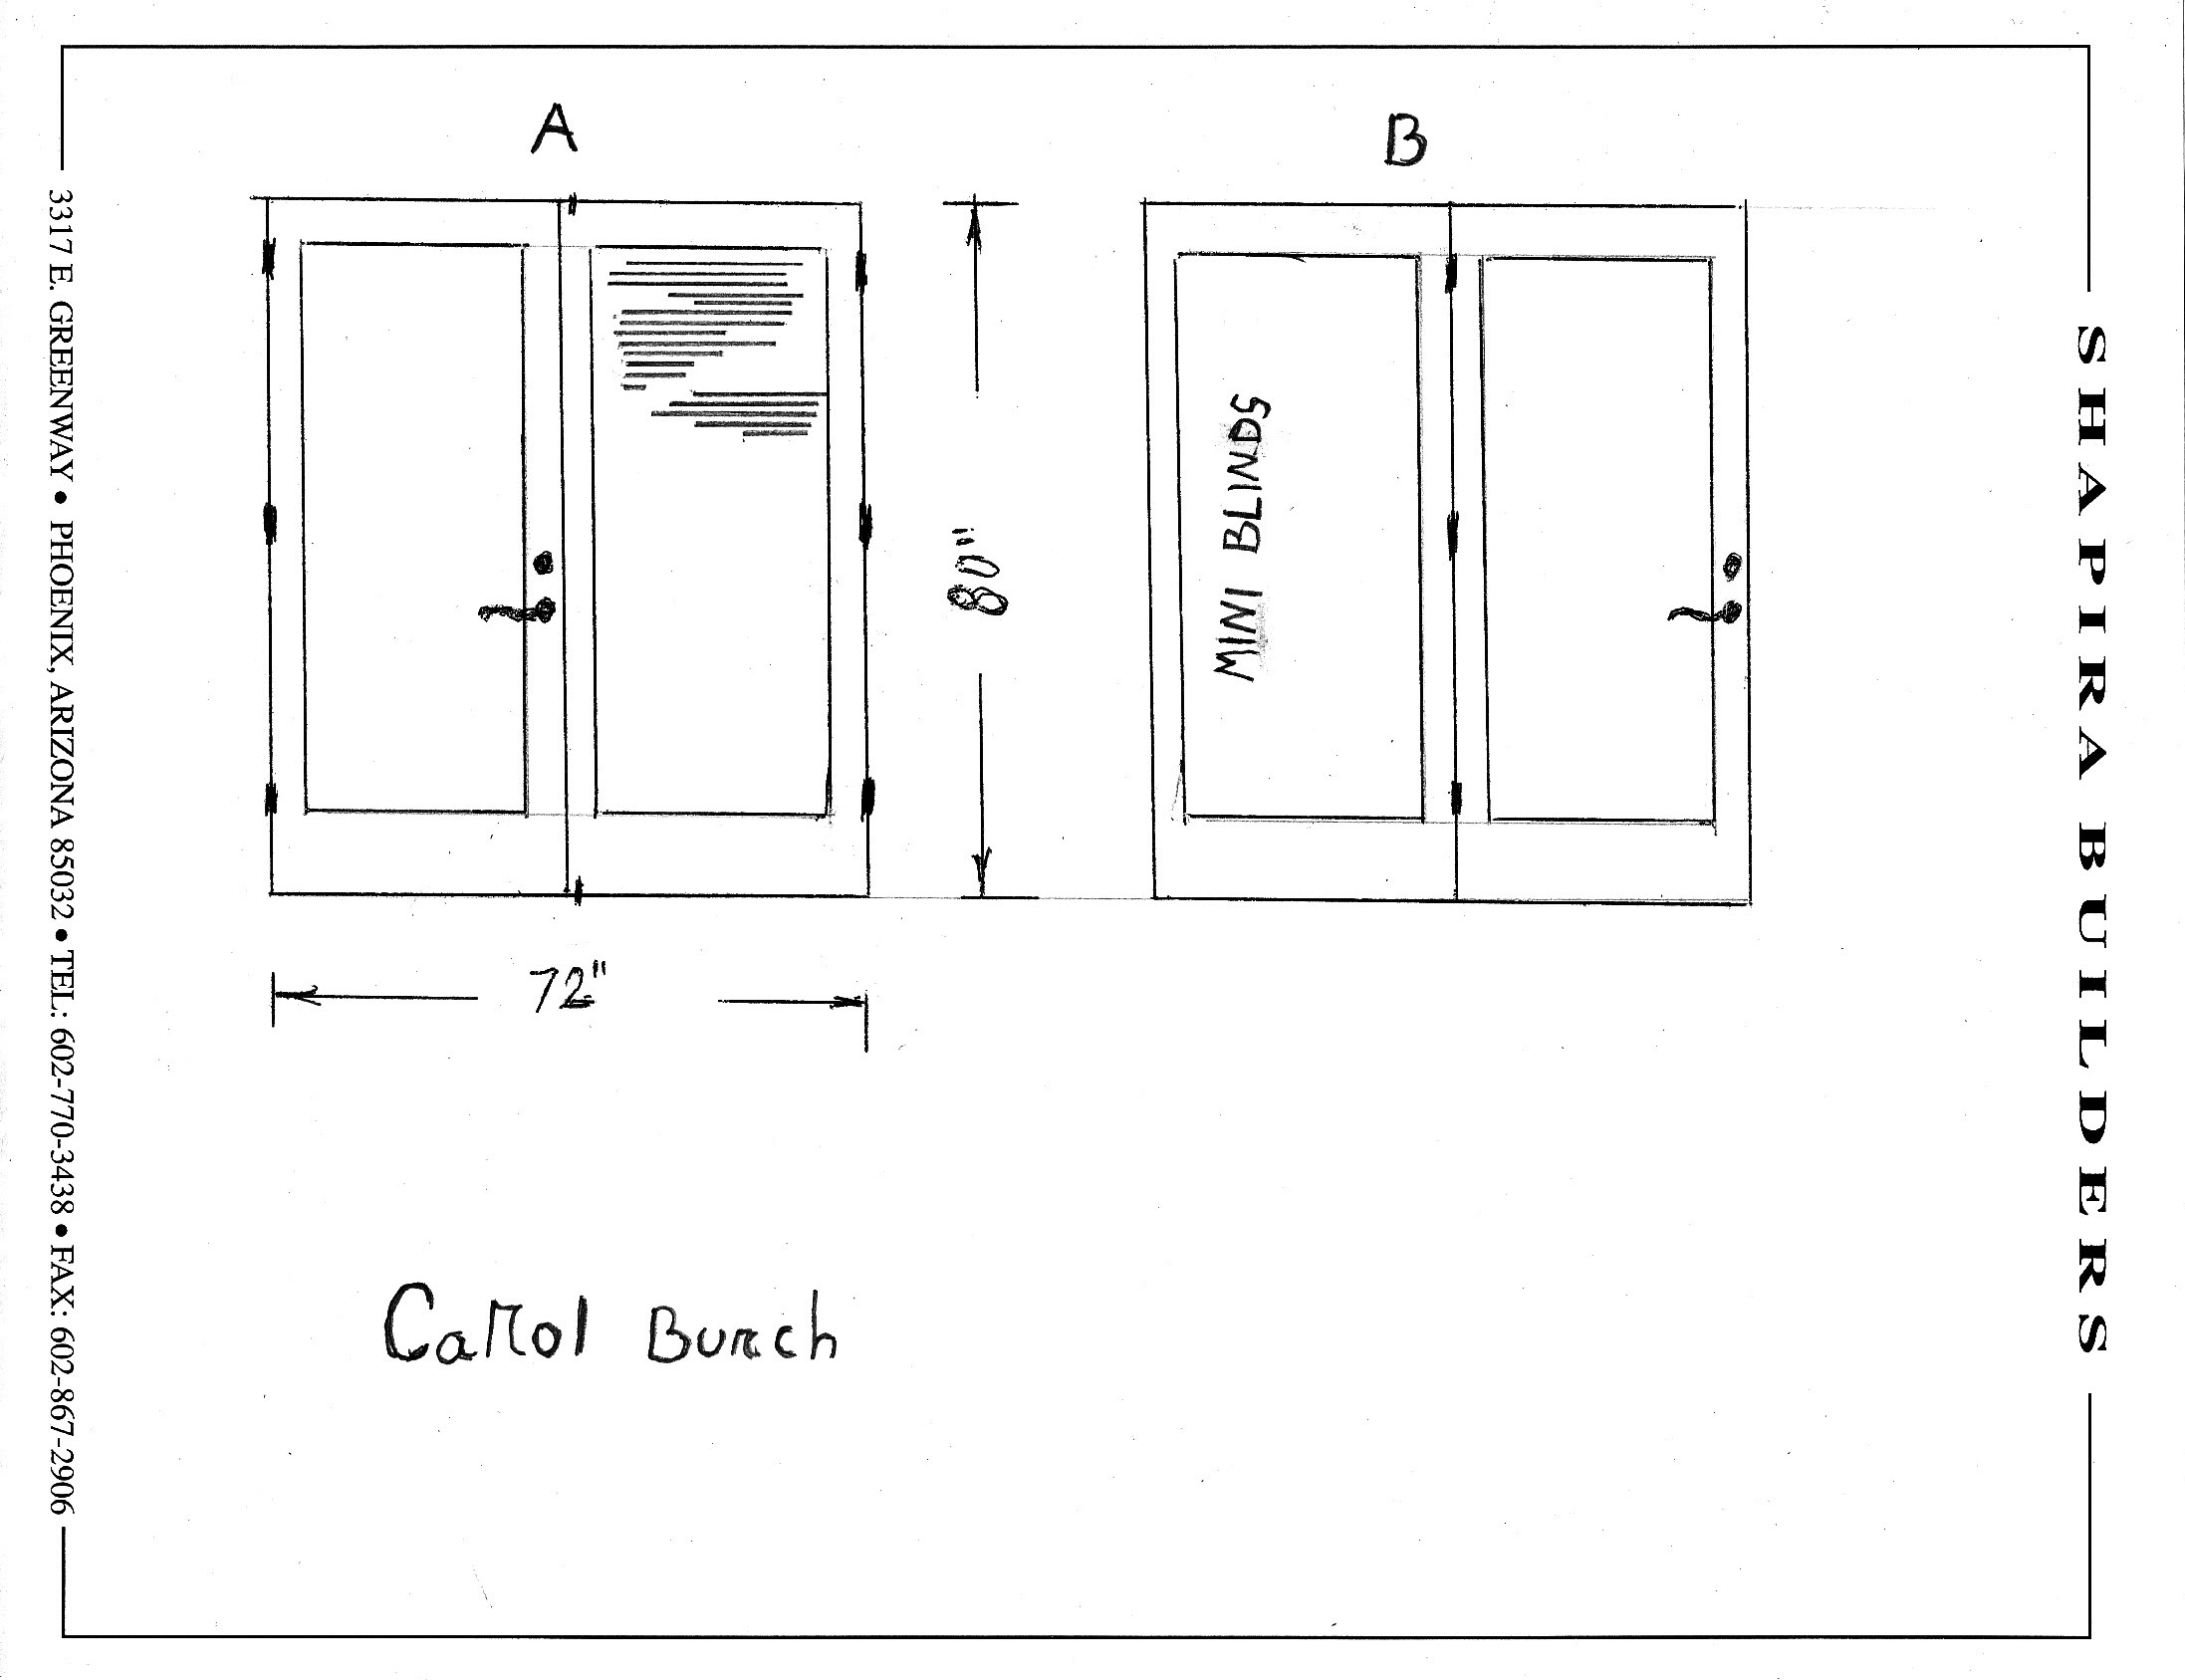 Amusing Rough Opening Size For 36 Inch Bifold Door Pictures   Best .